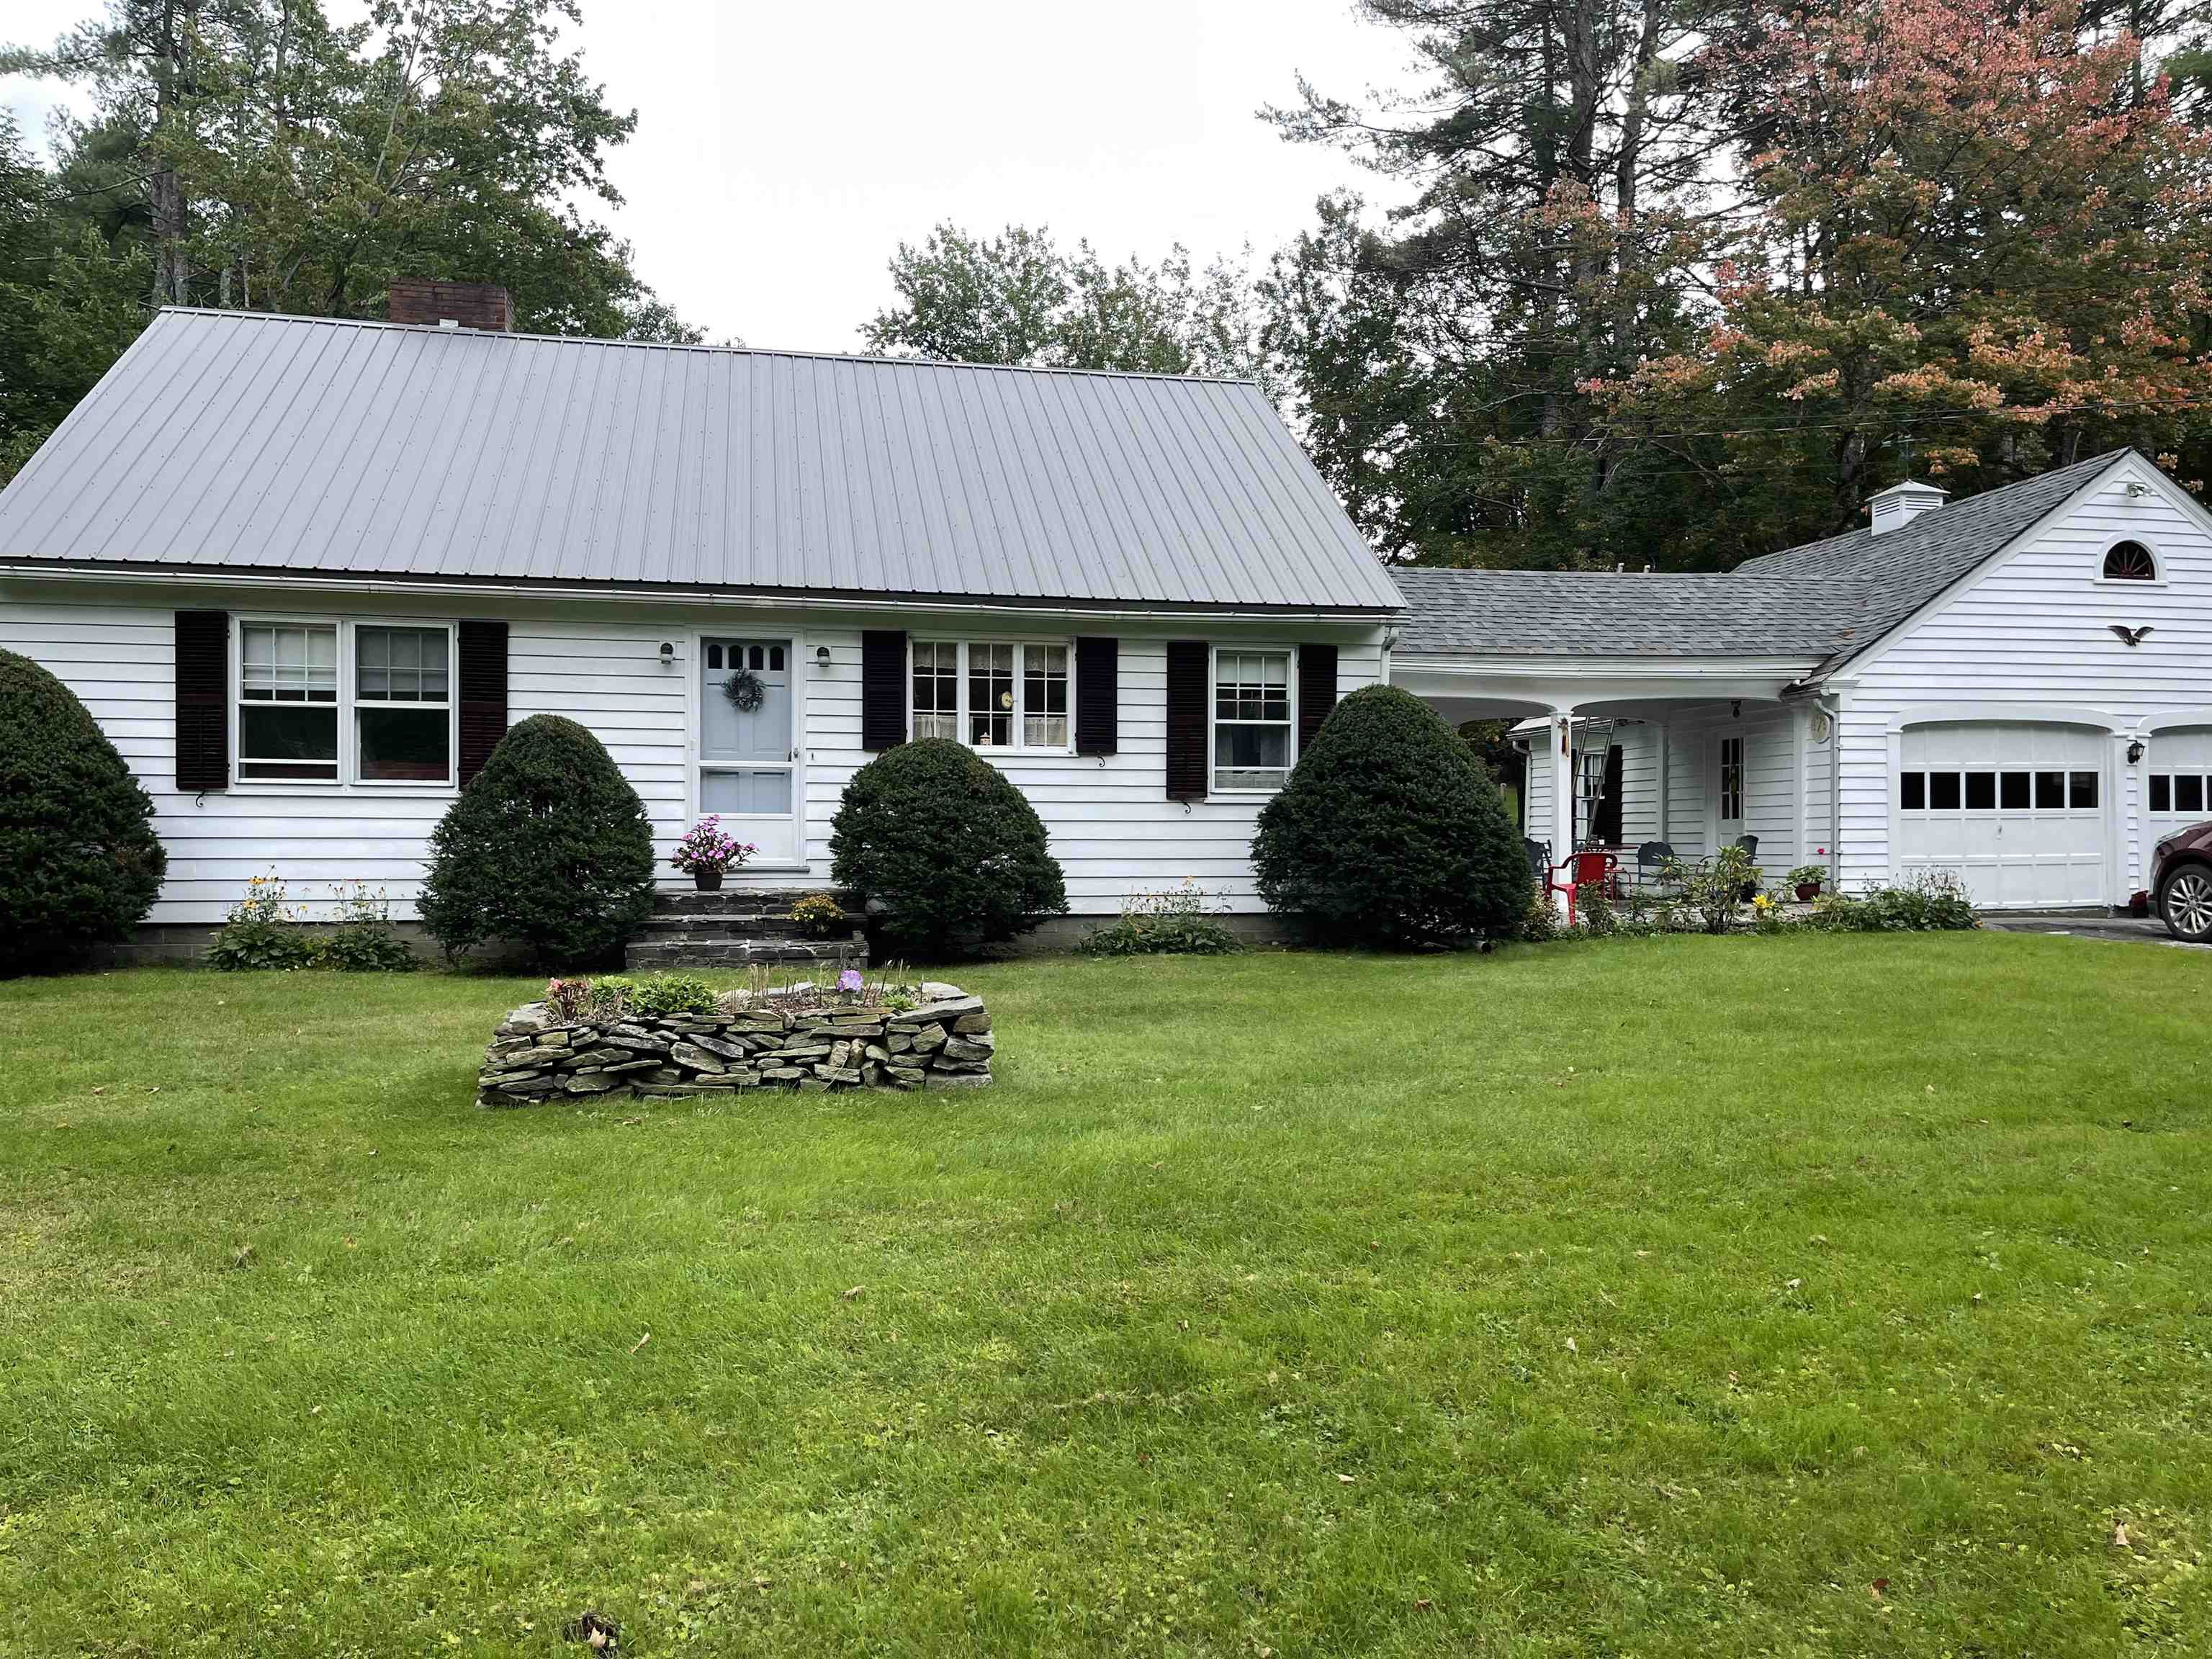 image of Springfield VT Home | sq.ft. 1824